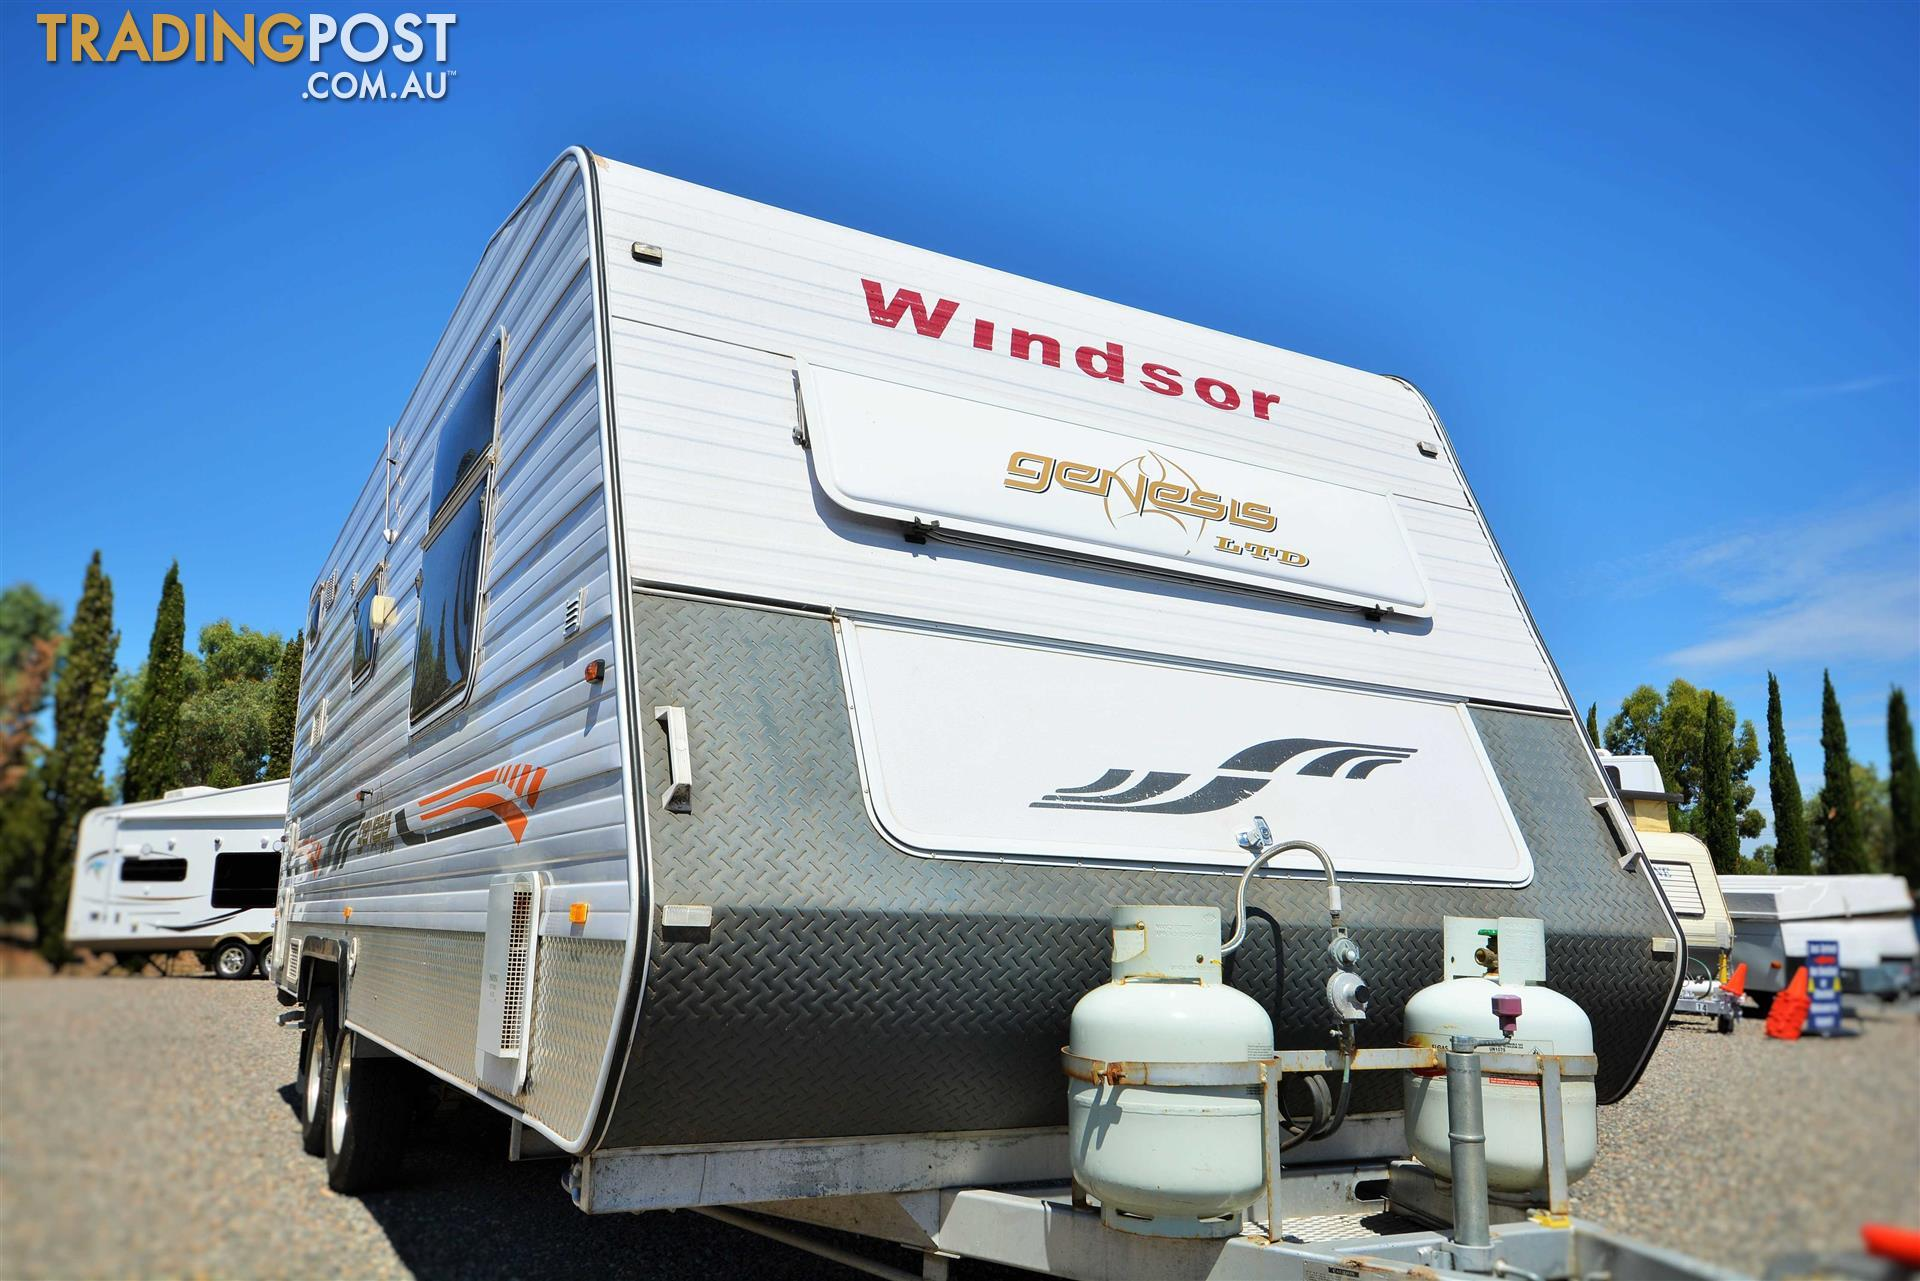 2010 Windsor Genesis Ltd Full Caravan 72 For Sale In